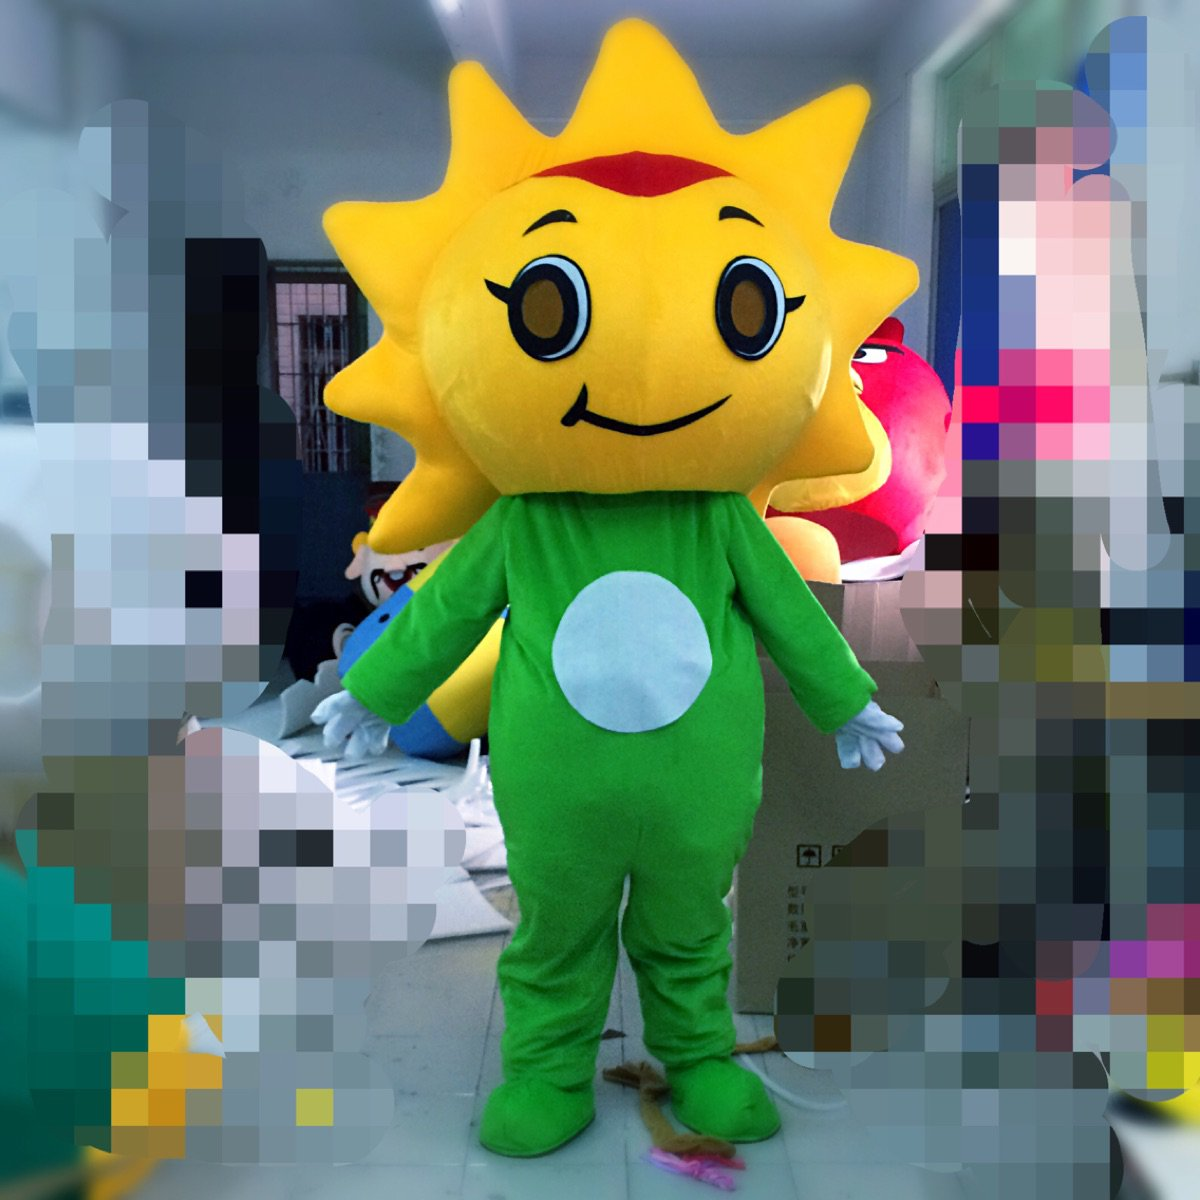 Sunflower Cartoon Doll Clothing Doll Festival Japanese Theatrical Performances Advertising Festival Opening Promotional Props Mascot Costume